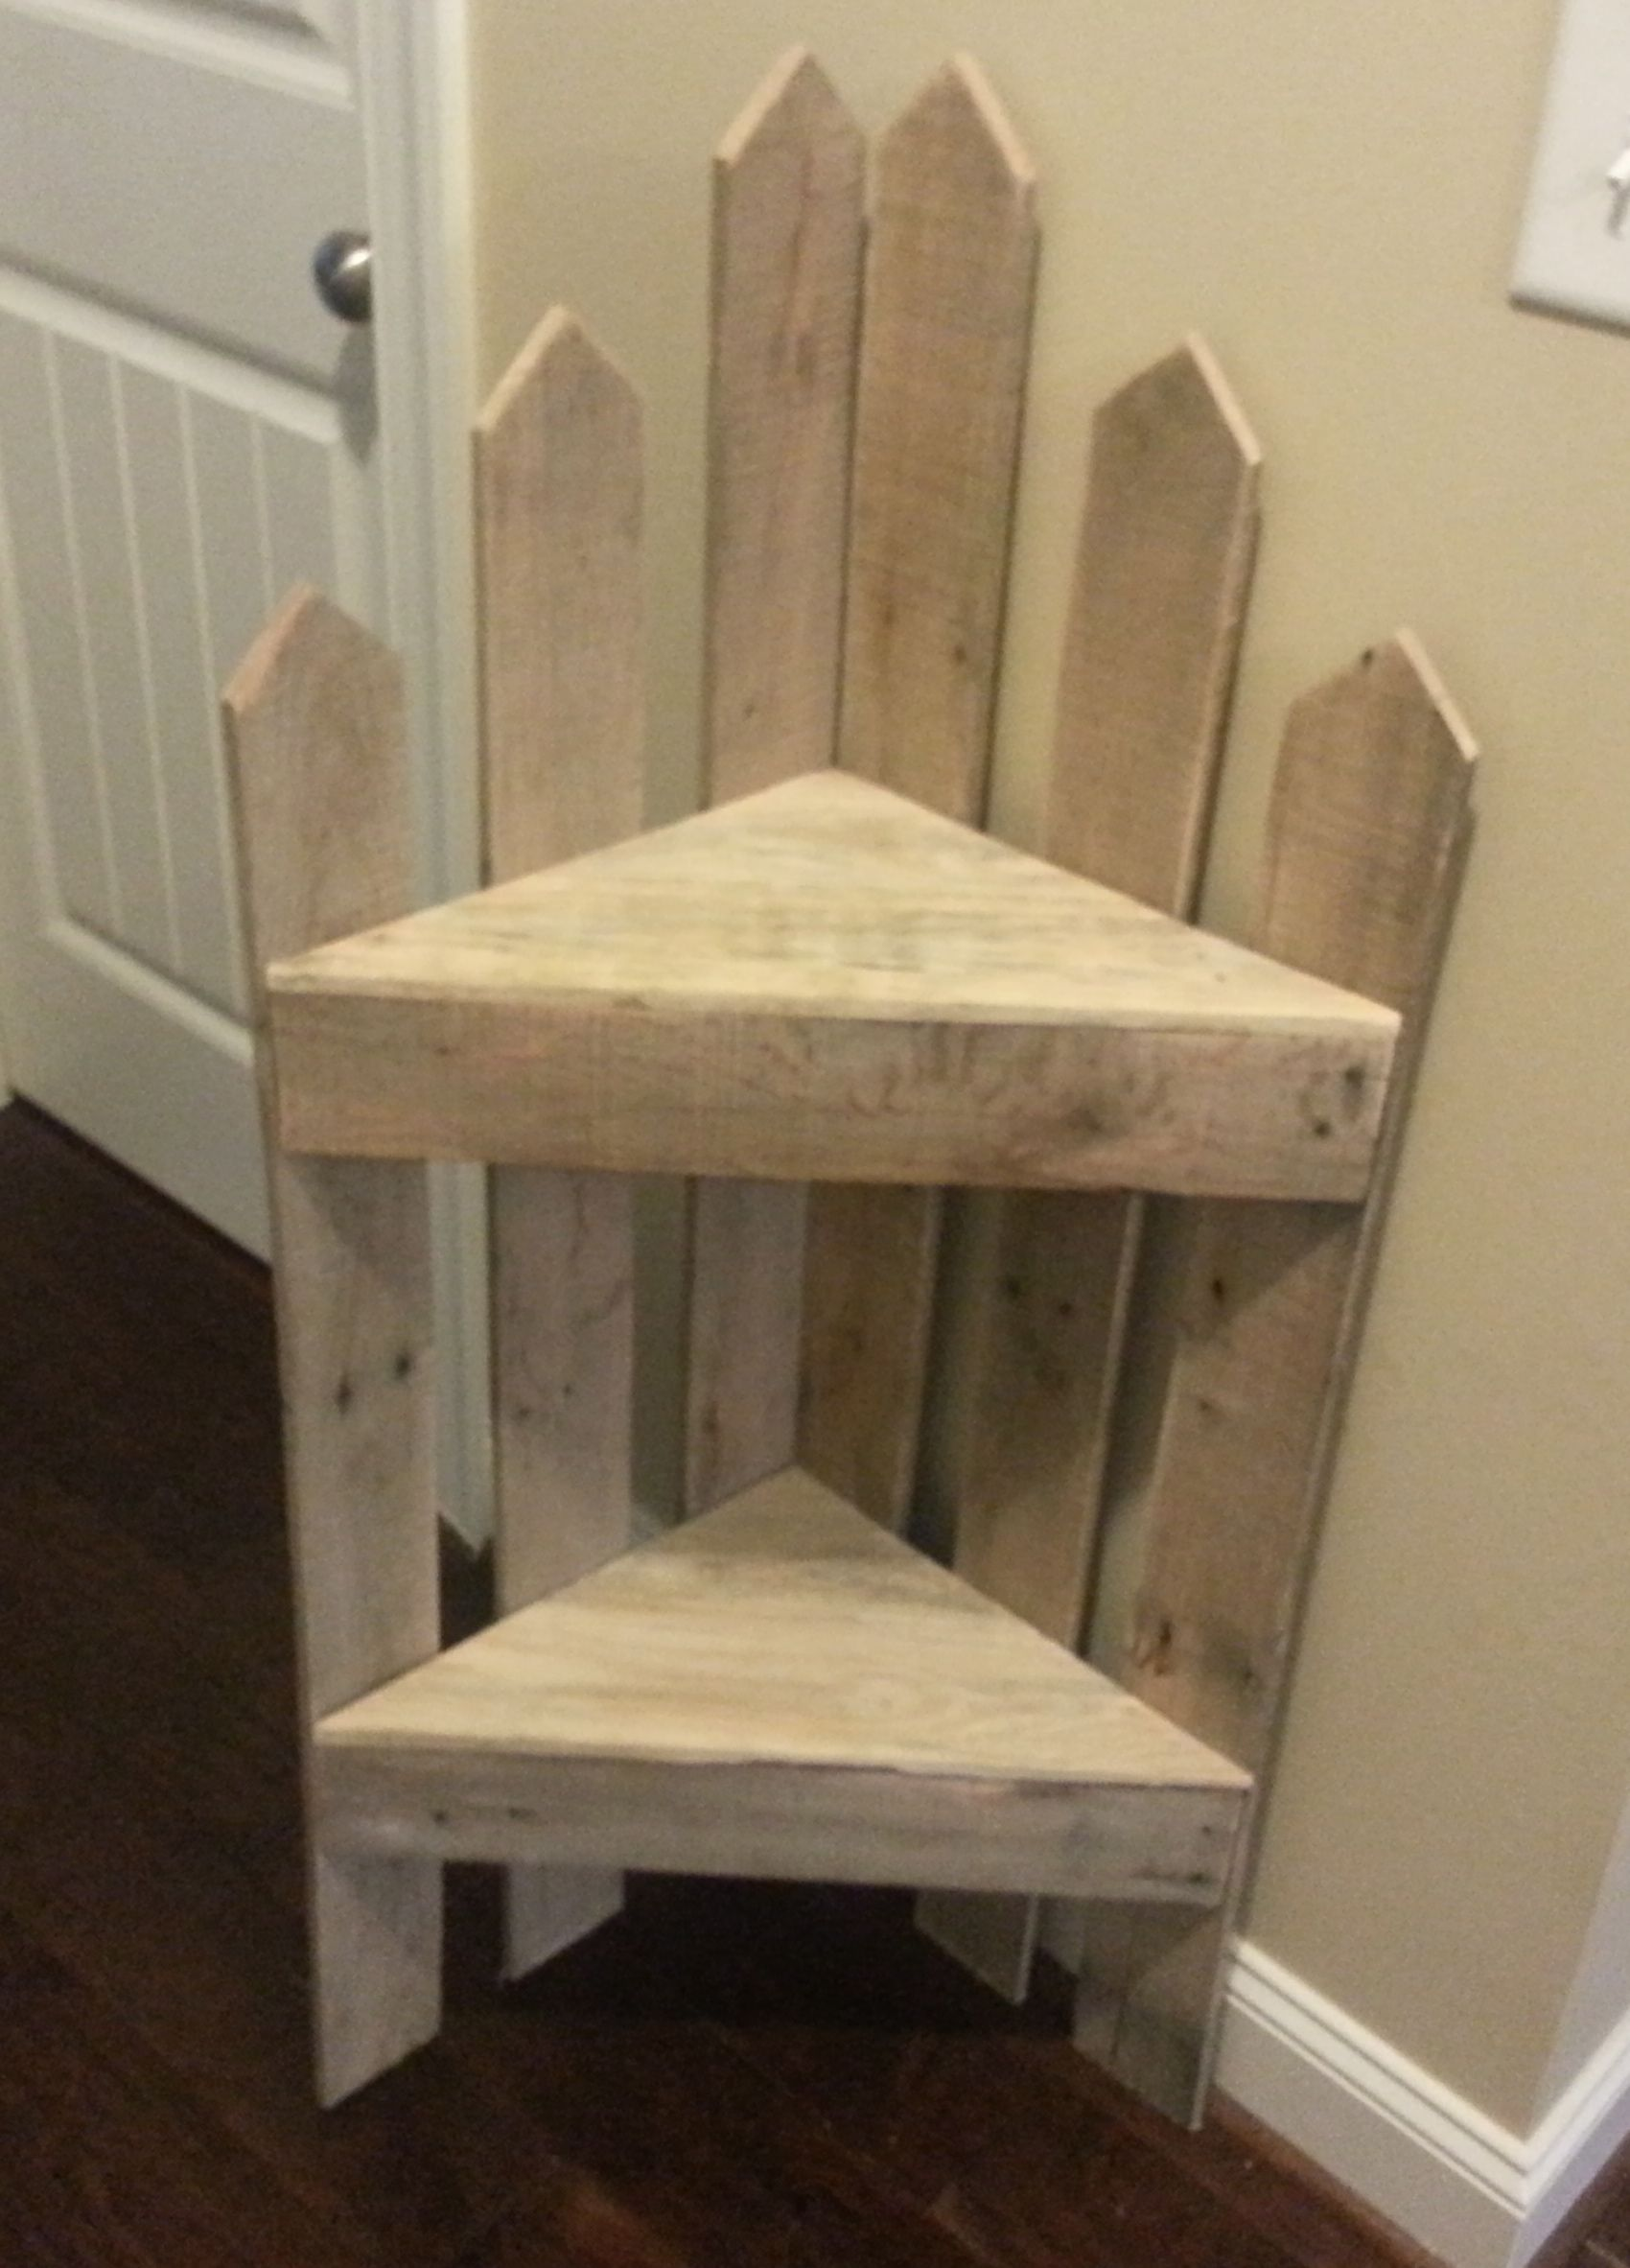 Shelves Made From Pallets Pallet Corner Shelf O Pallet Ideas Corner Shelf Inside Front